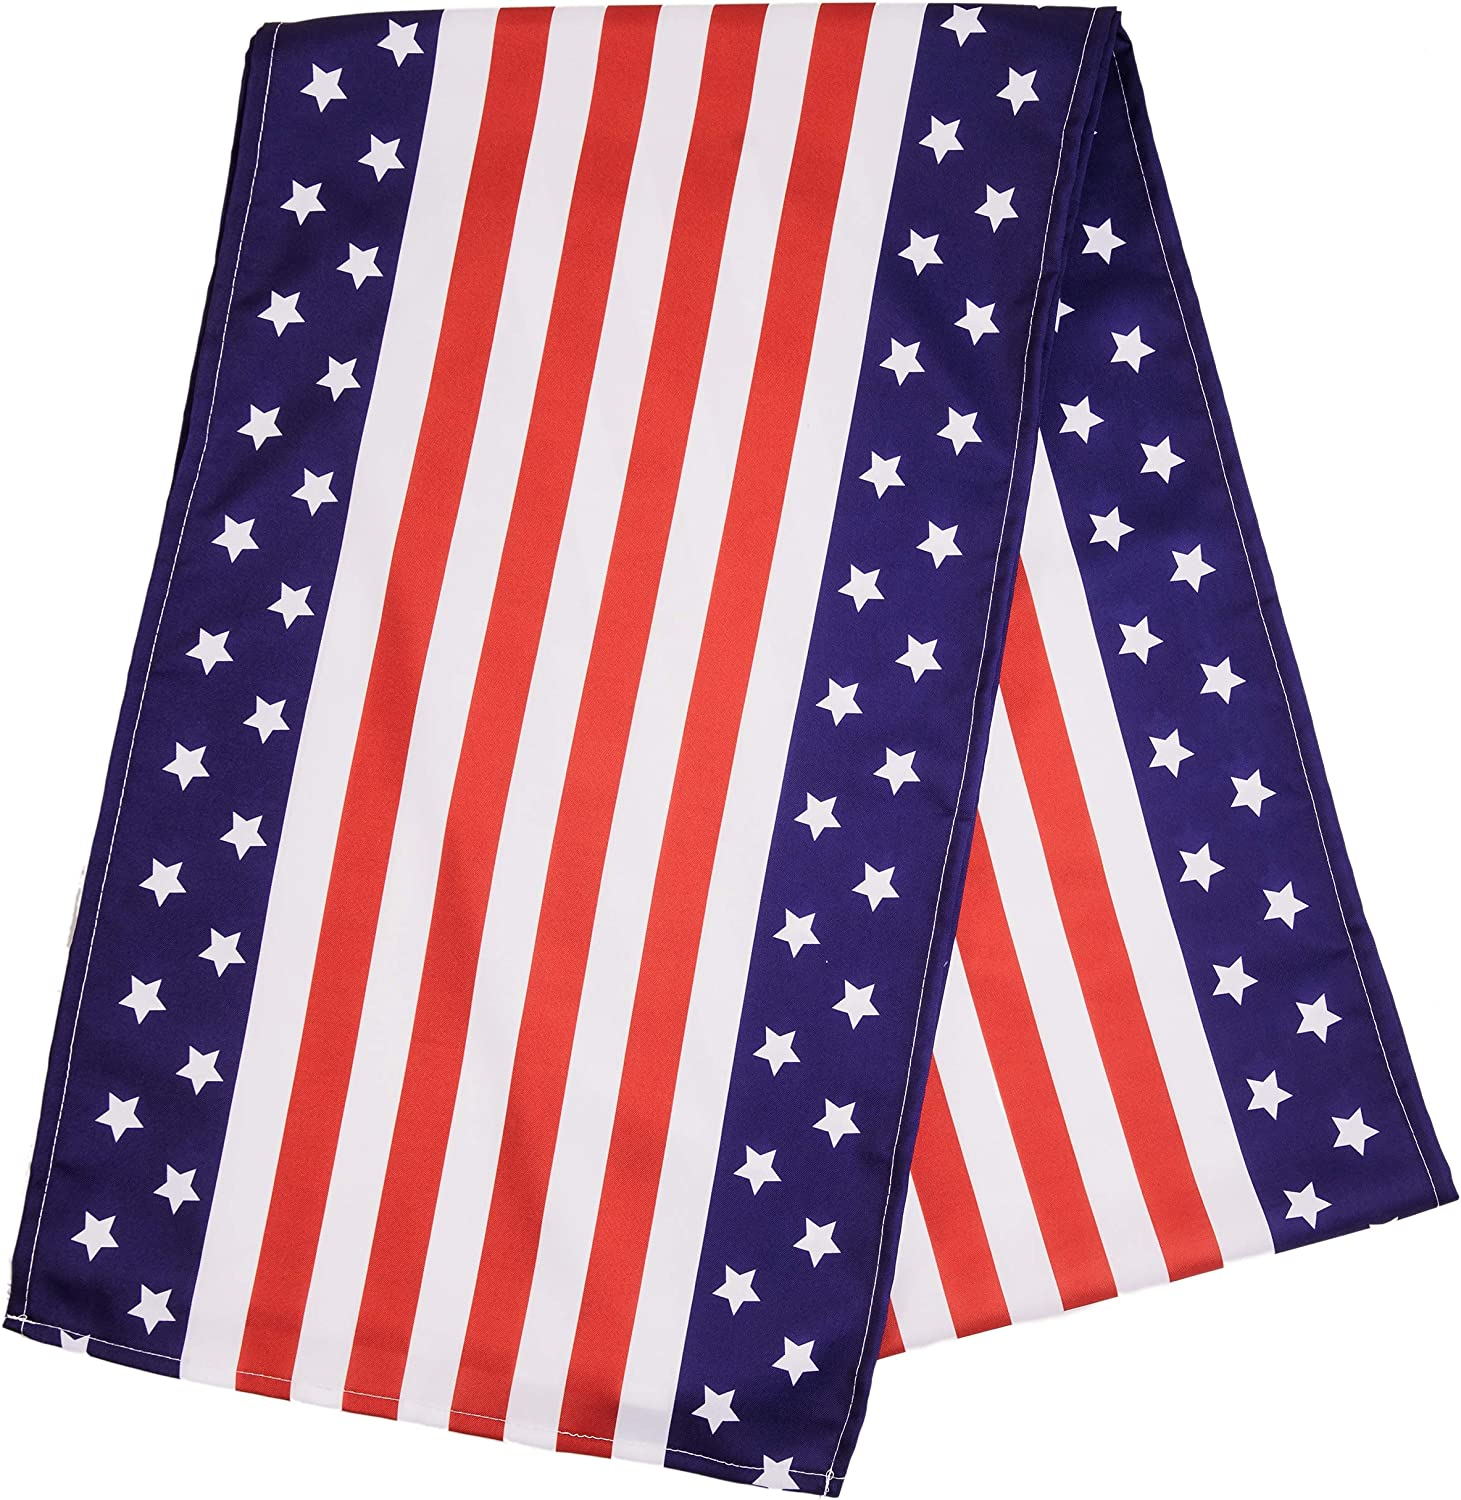 American Flag Table Runner - Patriotic 4th of July Table Coverings, Party Decor with Stars and Stripes - Durable 108 x 16 Inches